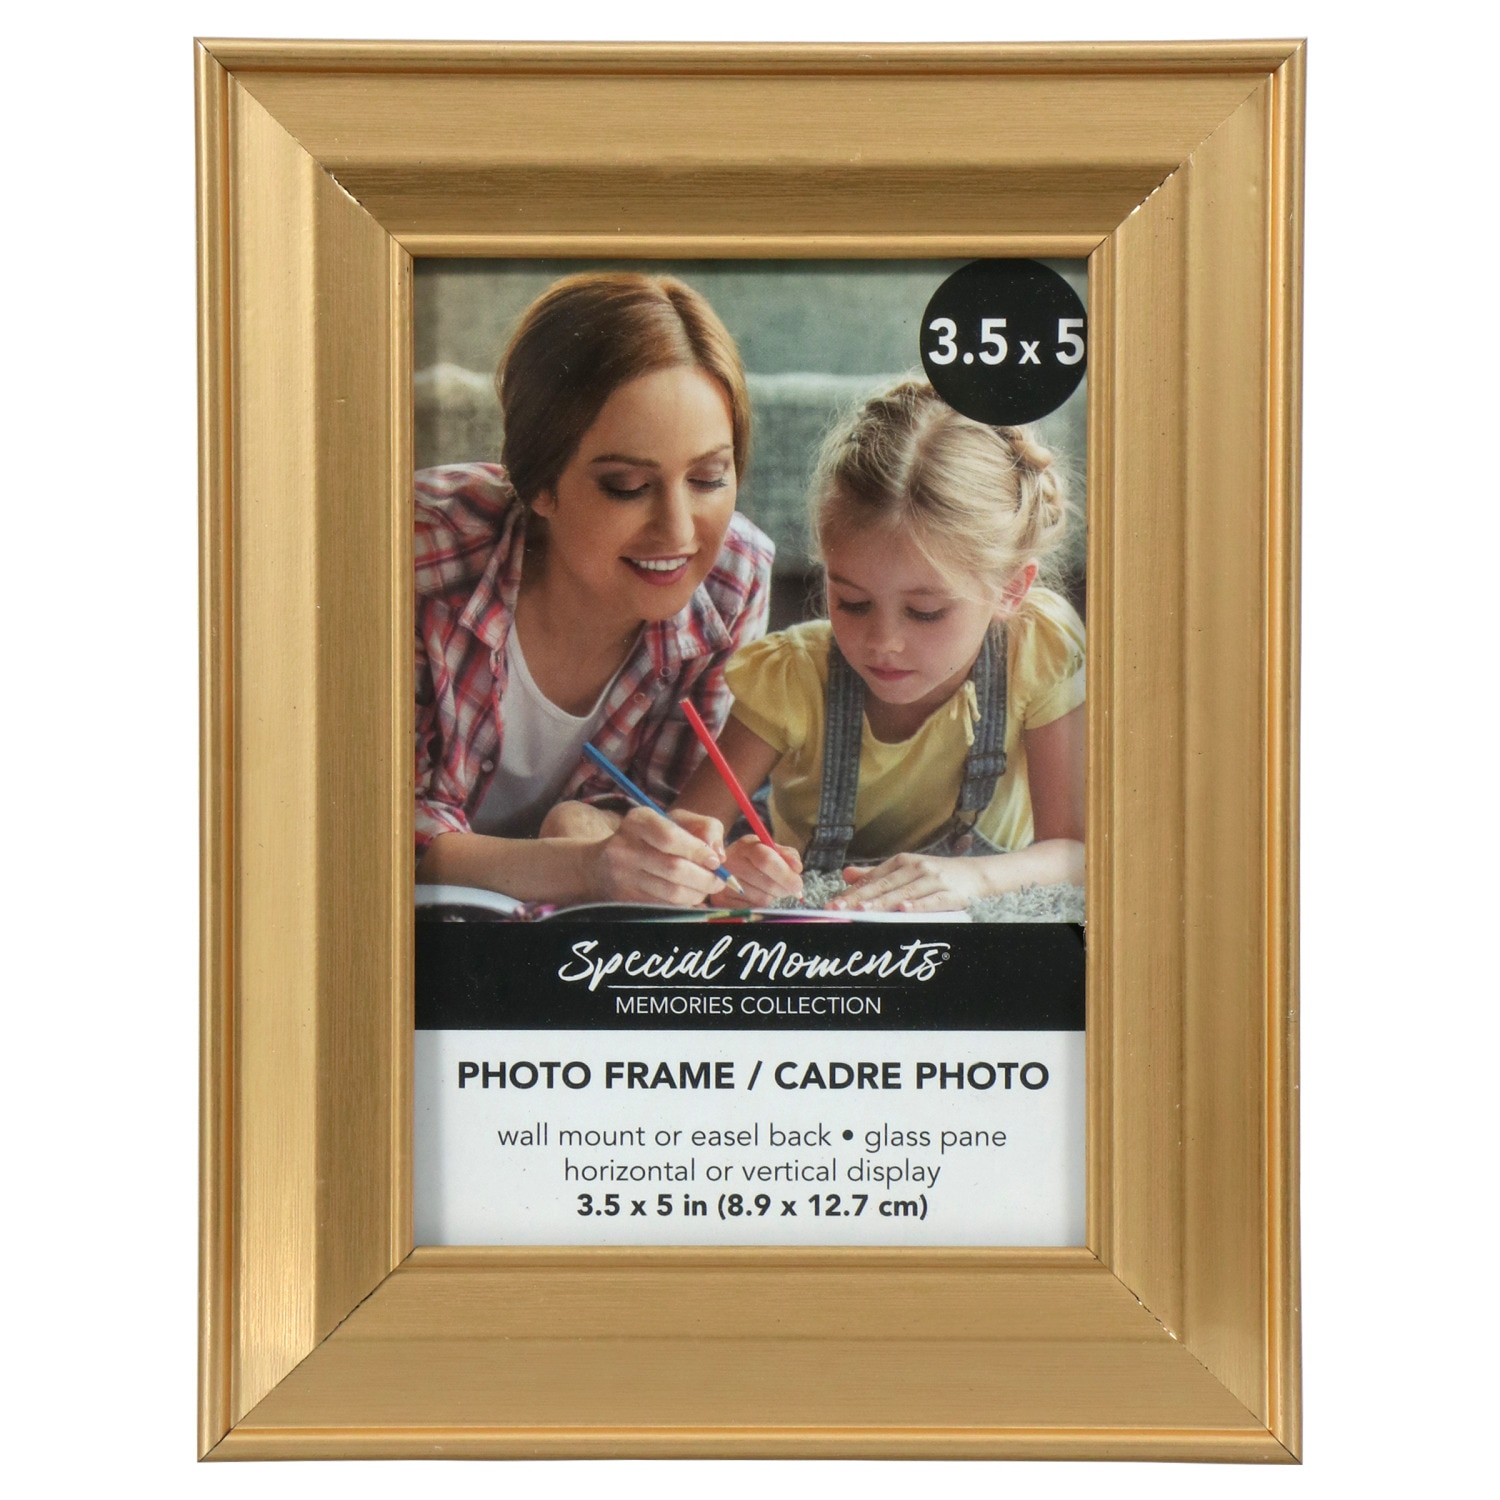 ac9f4e997dee Special Moments Wide Edge Gold Plastic Photo Frames